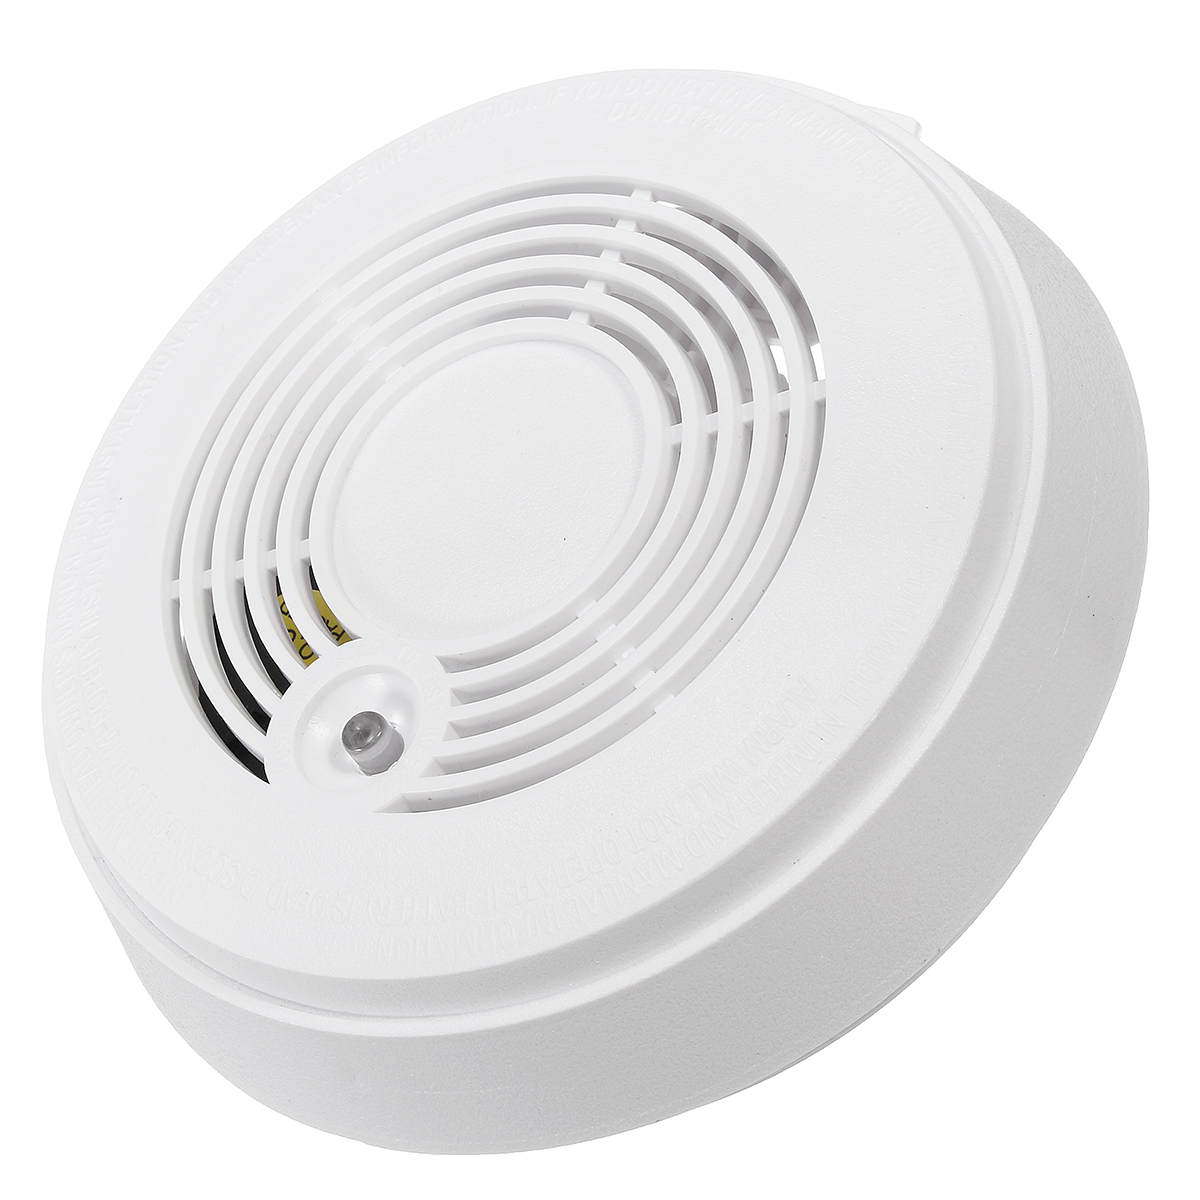 Wireless Cordless Smoke Sensor Detector Fire Alarm Home Guard Security System